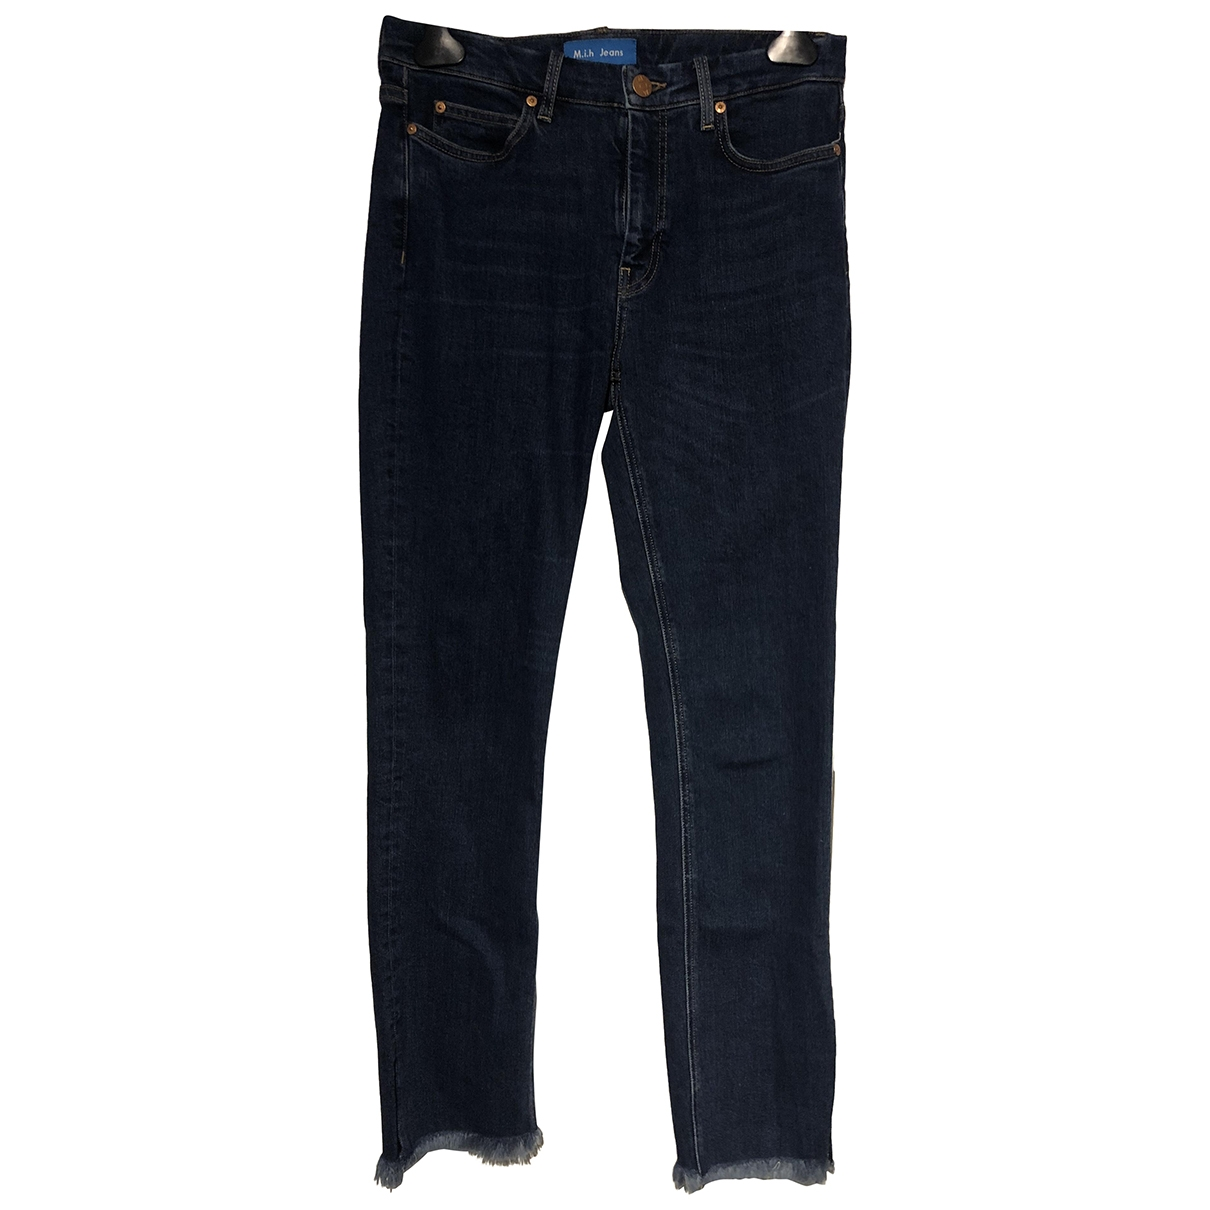 Mih Jeans \N Blue Denim - Jeans Trousers for Women 12 UK